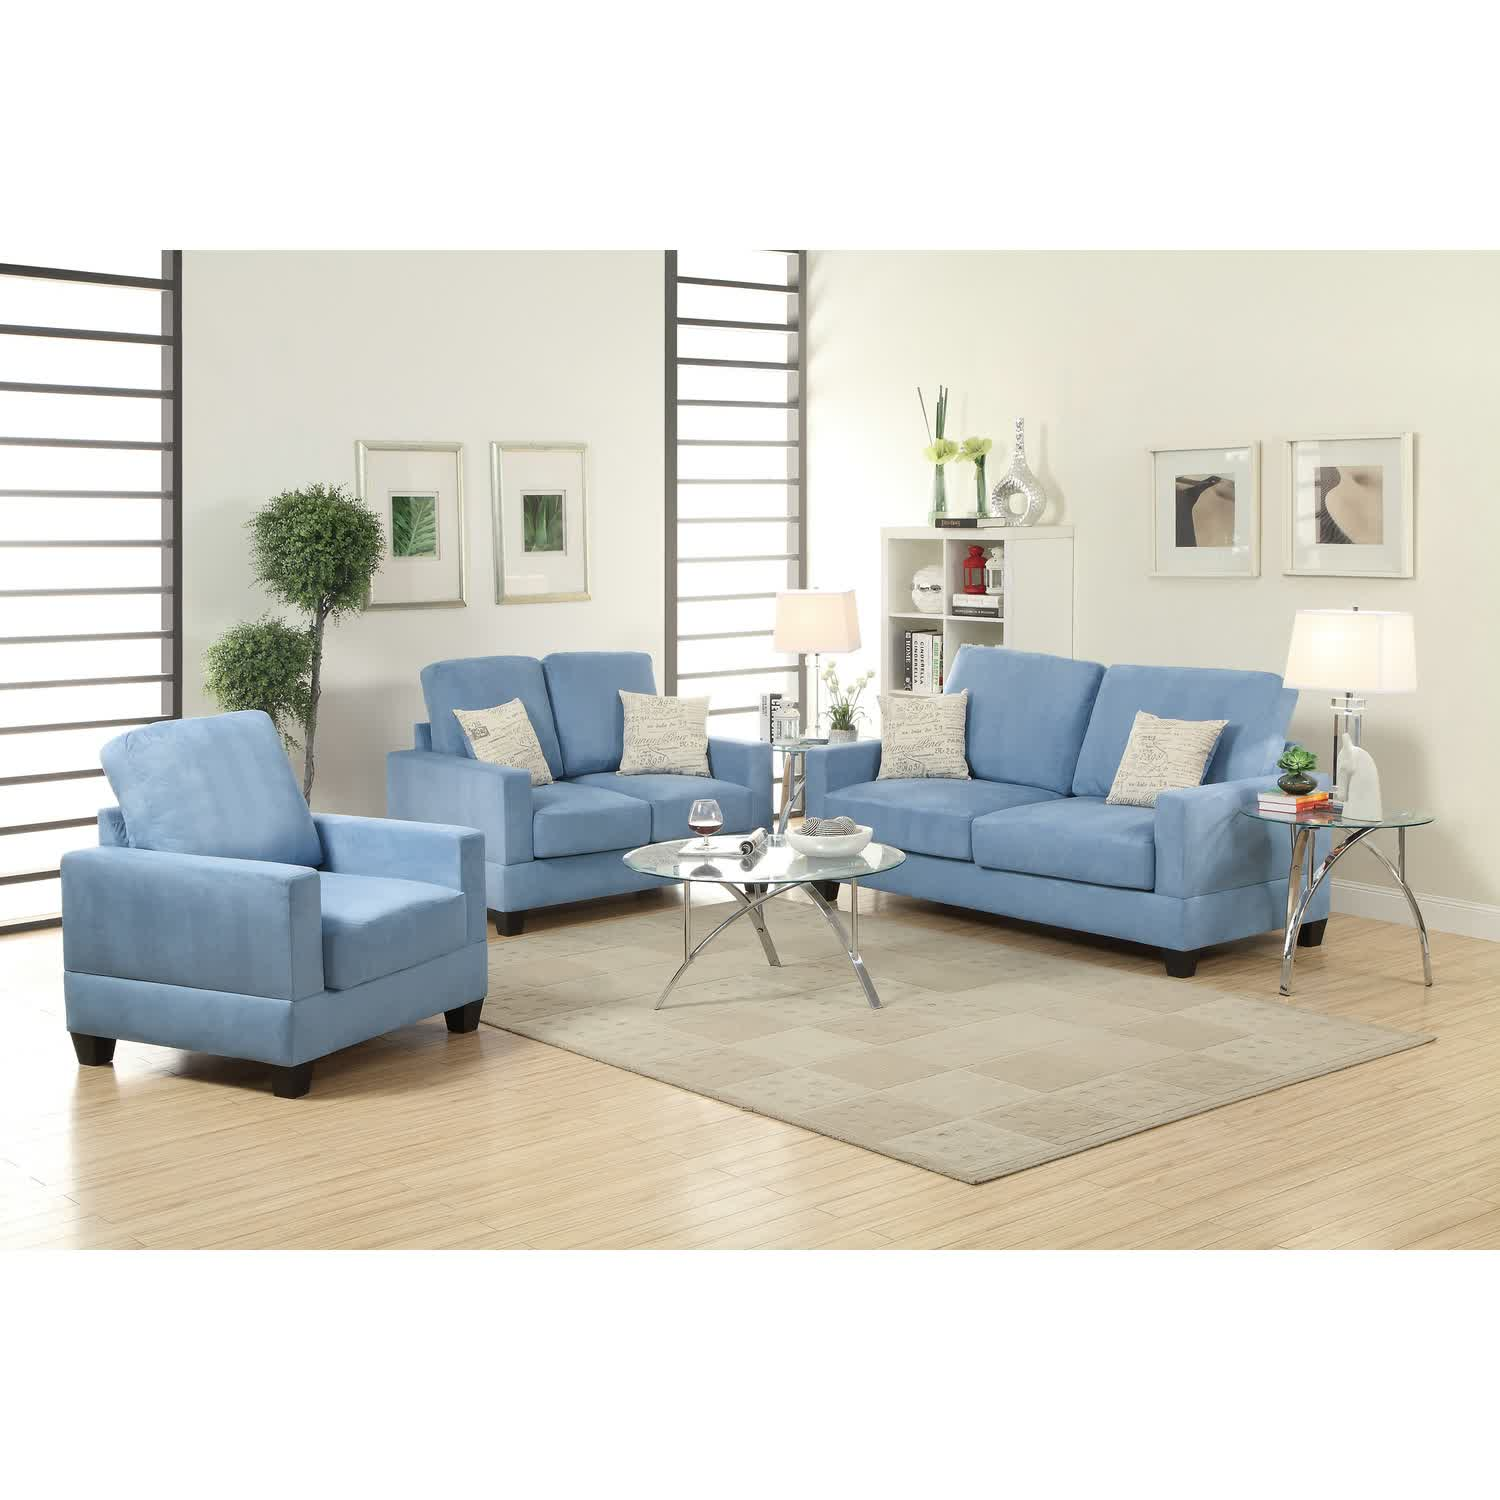 Small Apartment Size Furniture. Pretty Blue Apartment Size Sectionals With  White Accent Pillows Round Clear